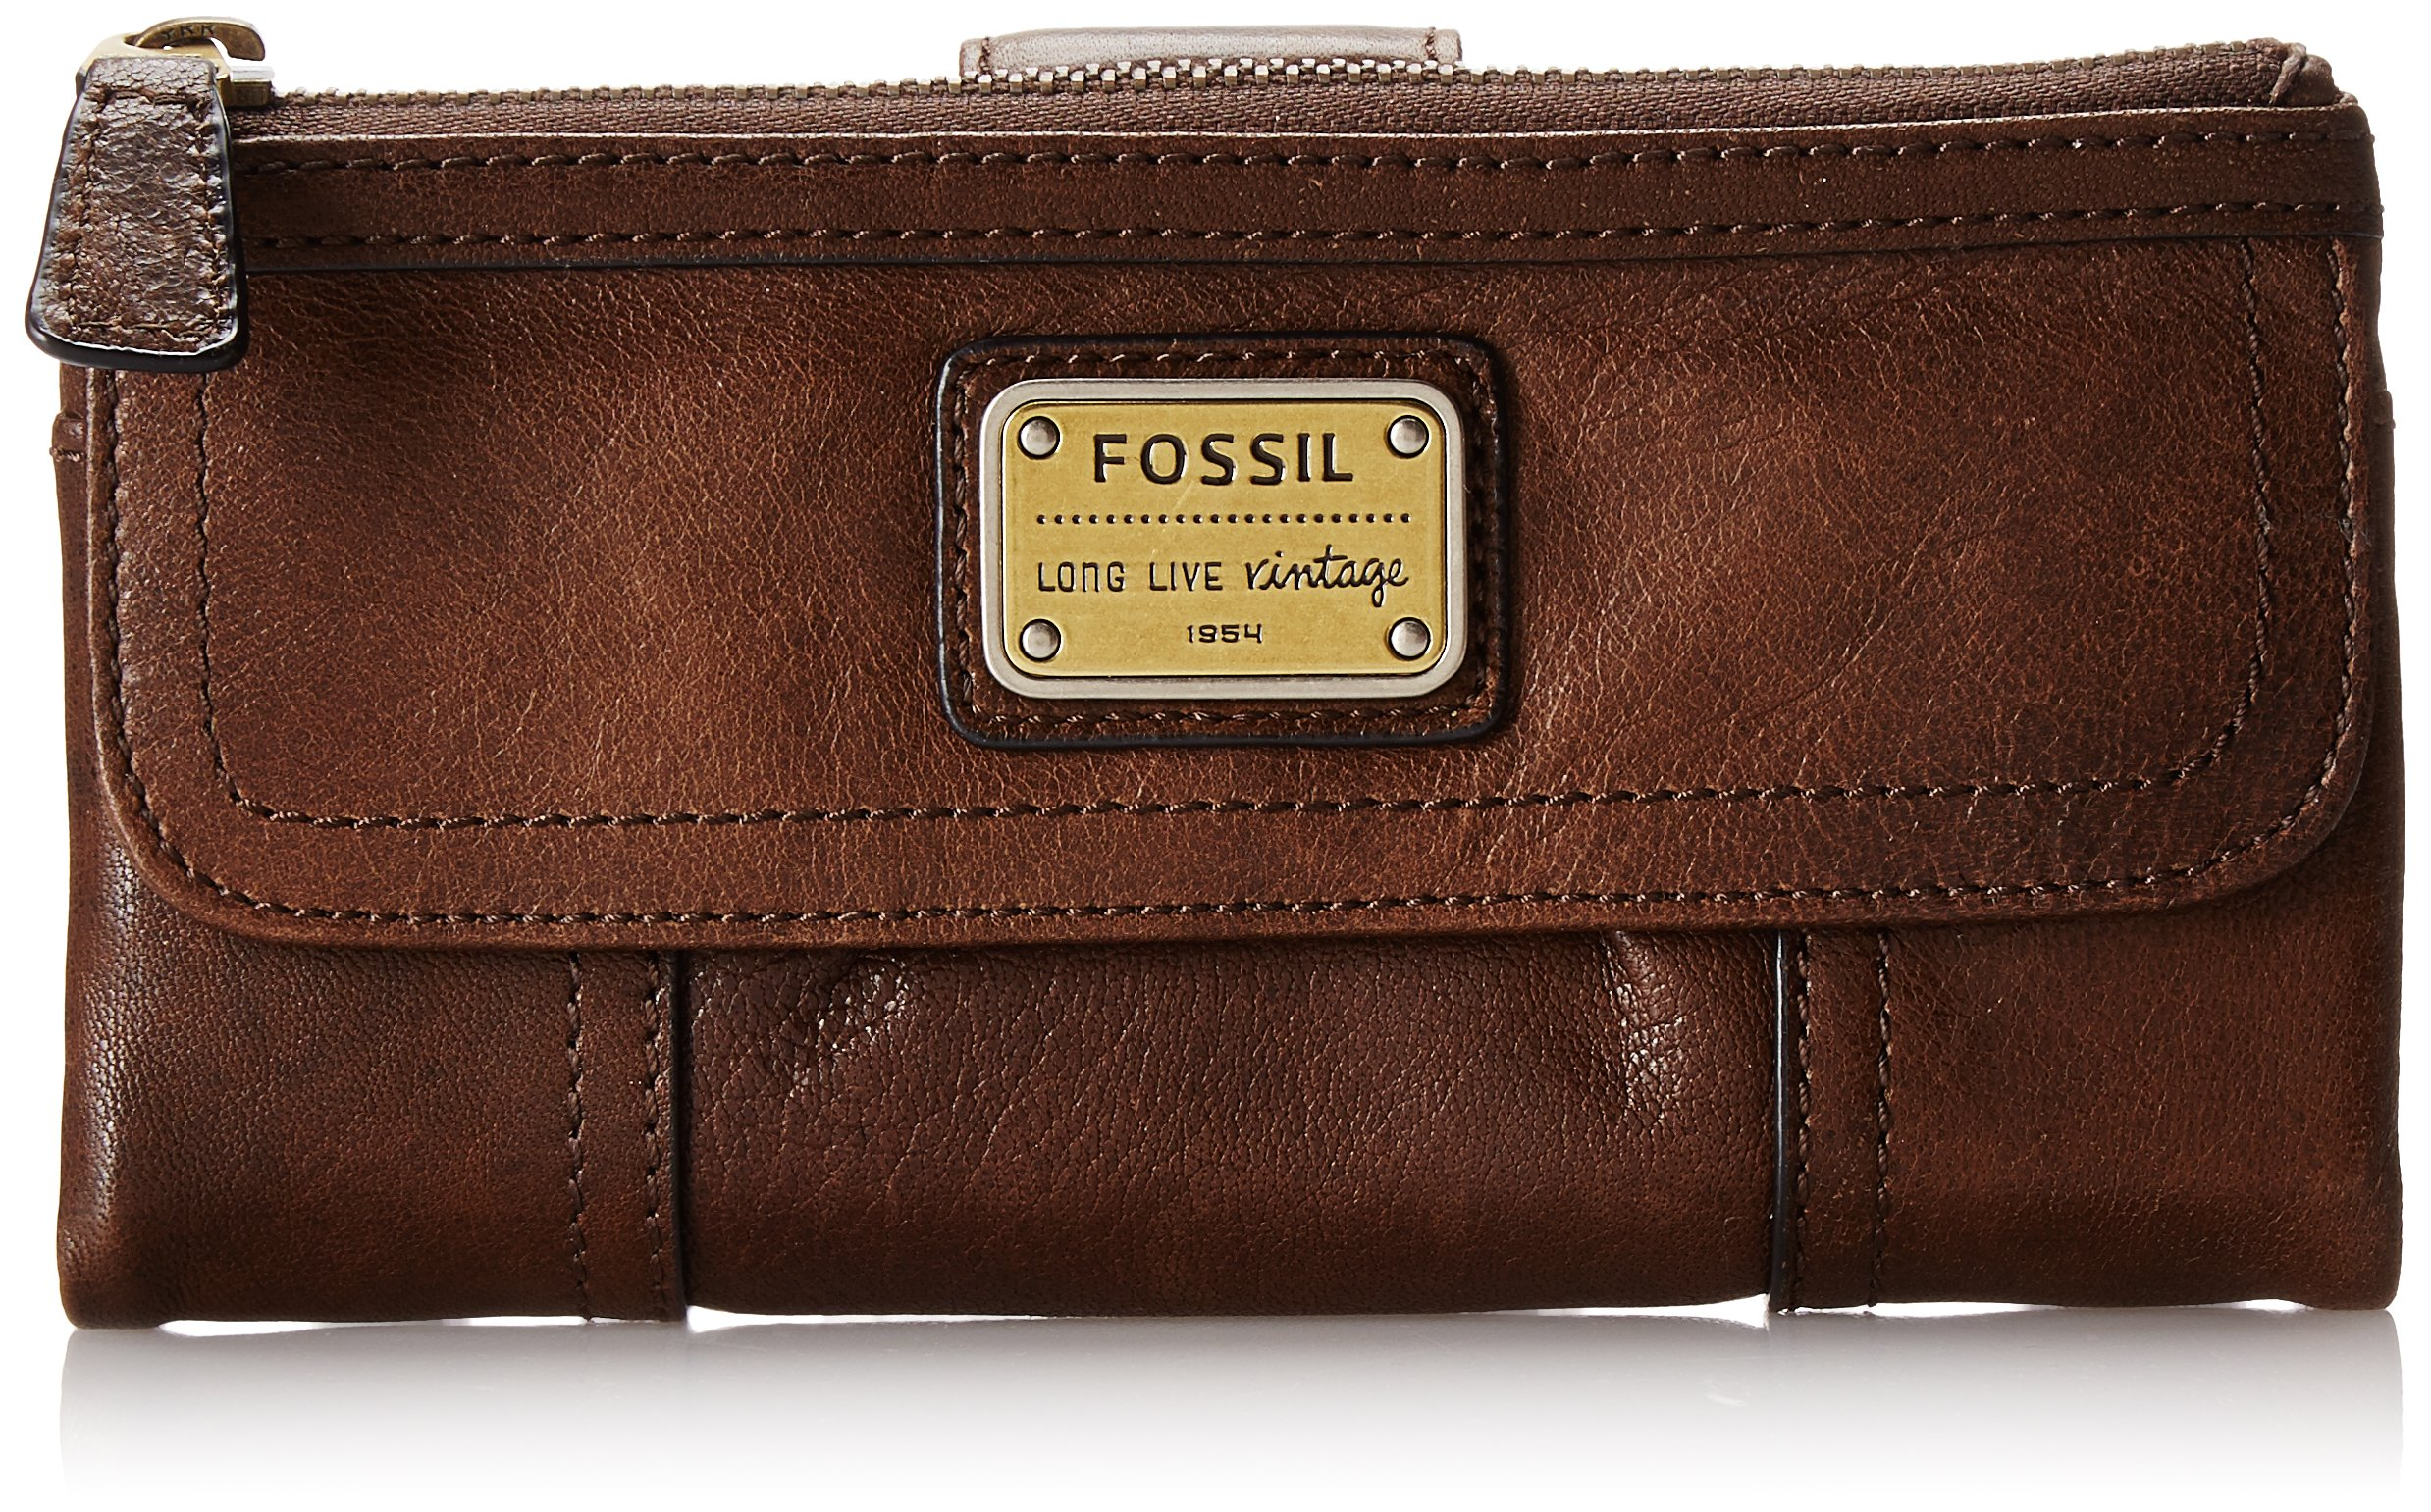 Fossil Emory Wallet, Espresso, One Size